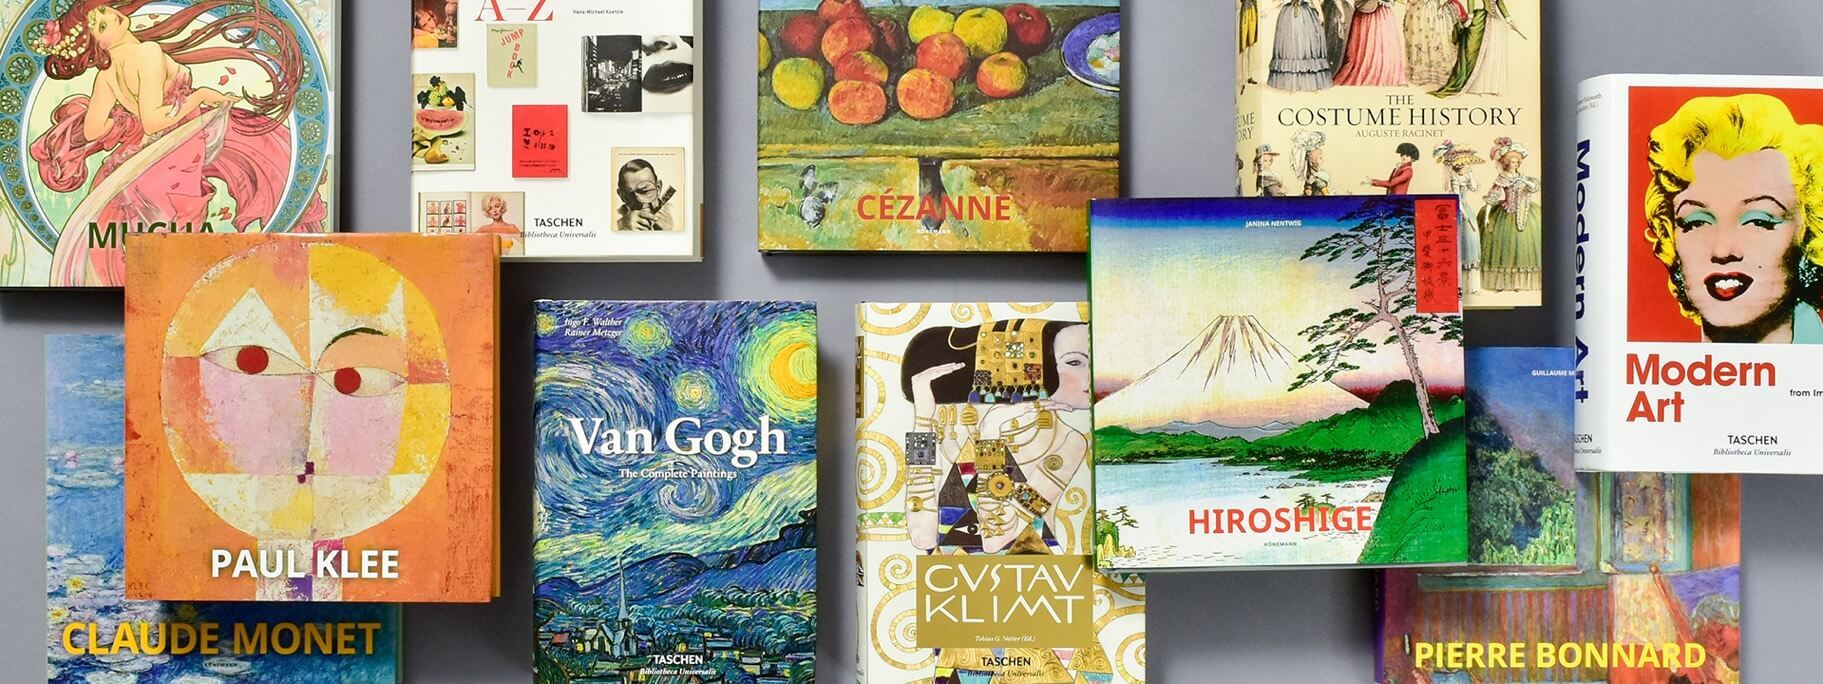 View of various art books available at the museum store